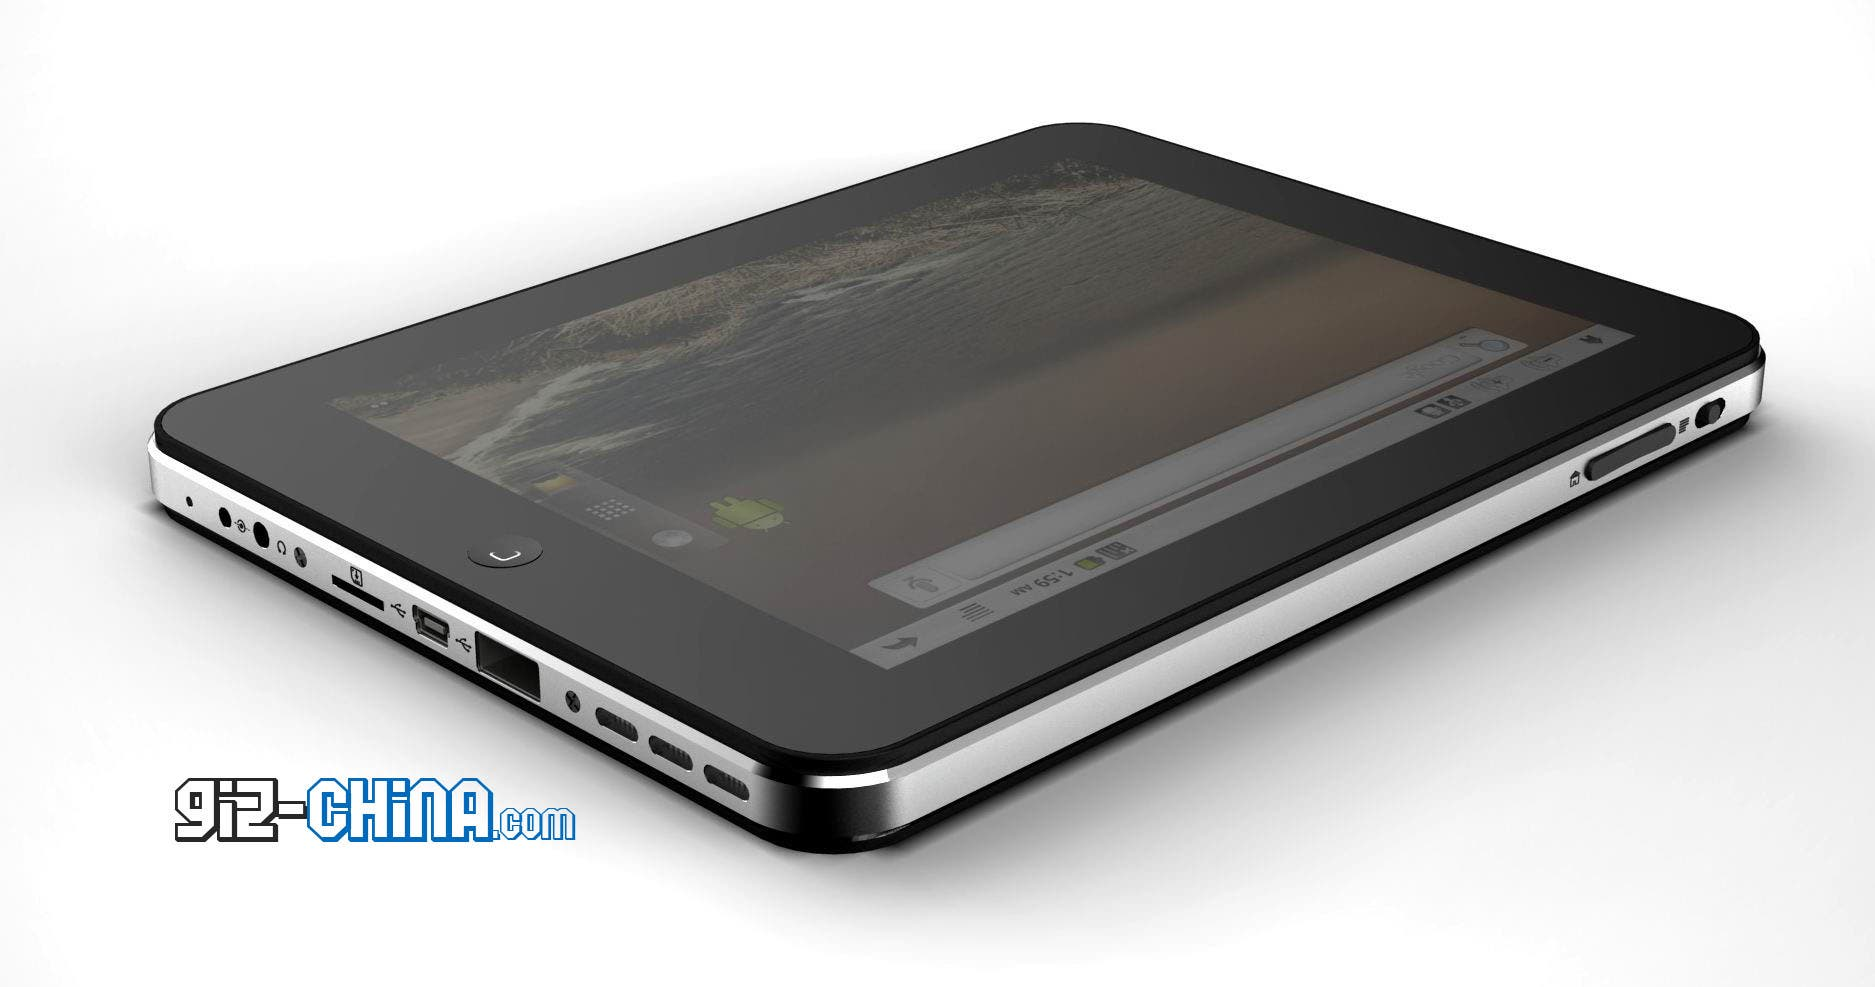 http://www.gizchina.com/wp-content/uploads/images/herokin-8-inch-tablet-spy-photo.jpg